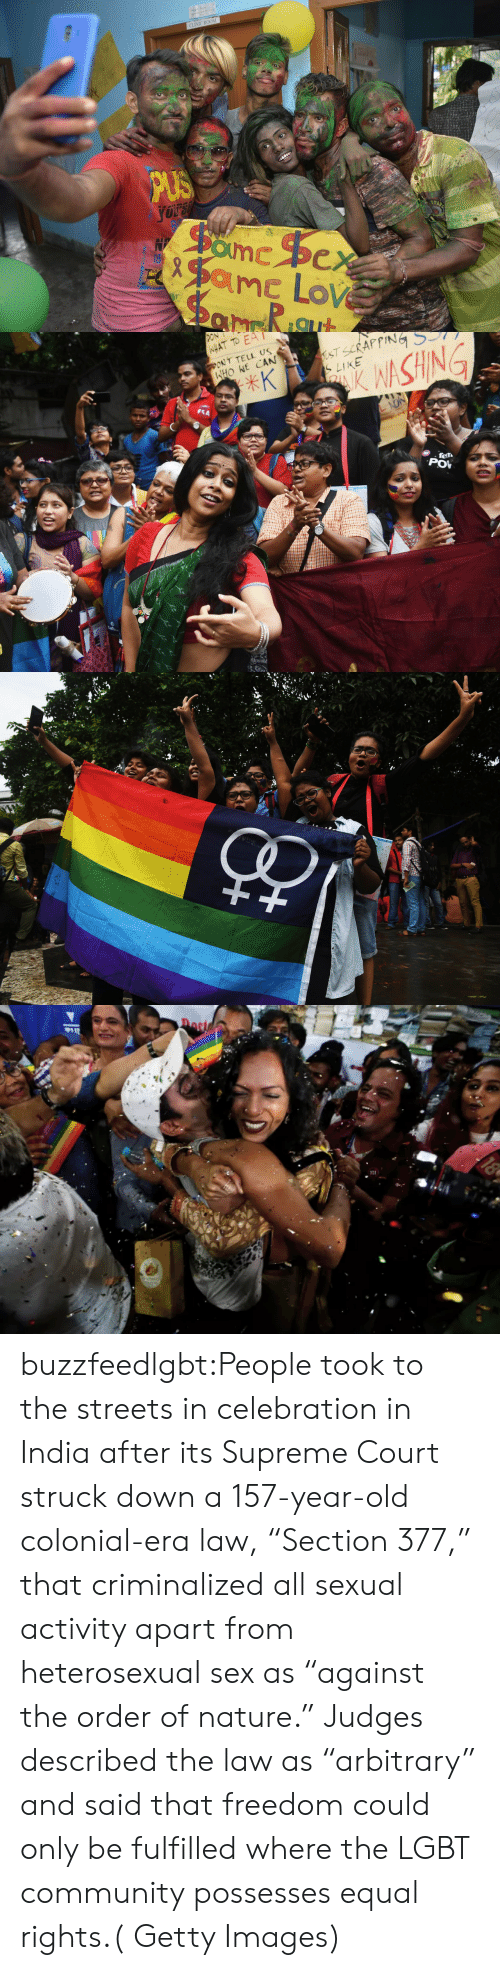 """Broomstick: CLINIC ROOM   HAT TO EA  ONT TELL US  HONE CAN  LIKE  SHIN  POV buzzfeedlgbt:People took to the streets in celebration in India after its Supreme Court struck down a 157-year-old colonial-era law, """"Section 377,"""" that criminalized all sexual activity apart from heterosexual sex as """"against the order of nature."""" Judges described the law as """"arbitrary"""" and said that freedom could only be fulfilled where the LGBT community possesses equal rights.( Getty Images)"""